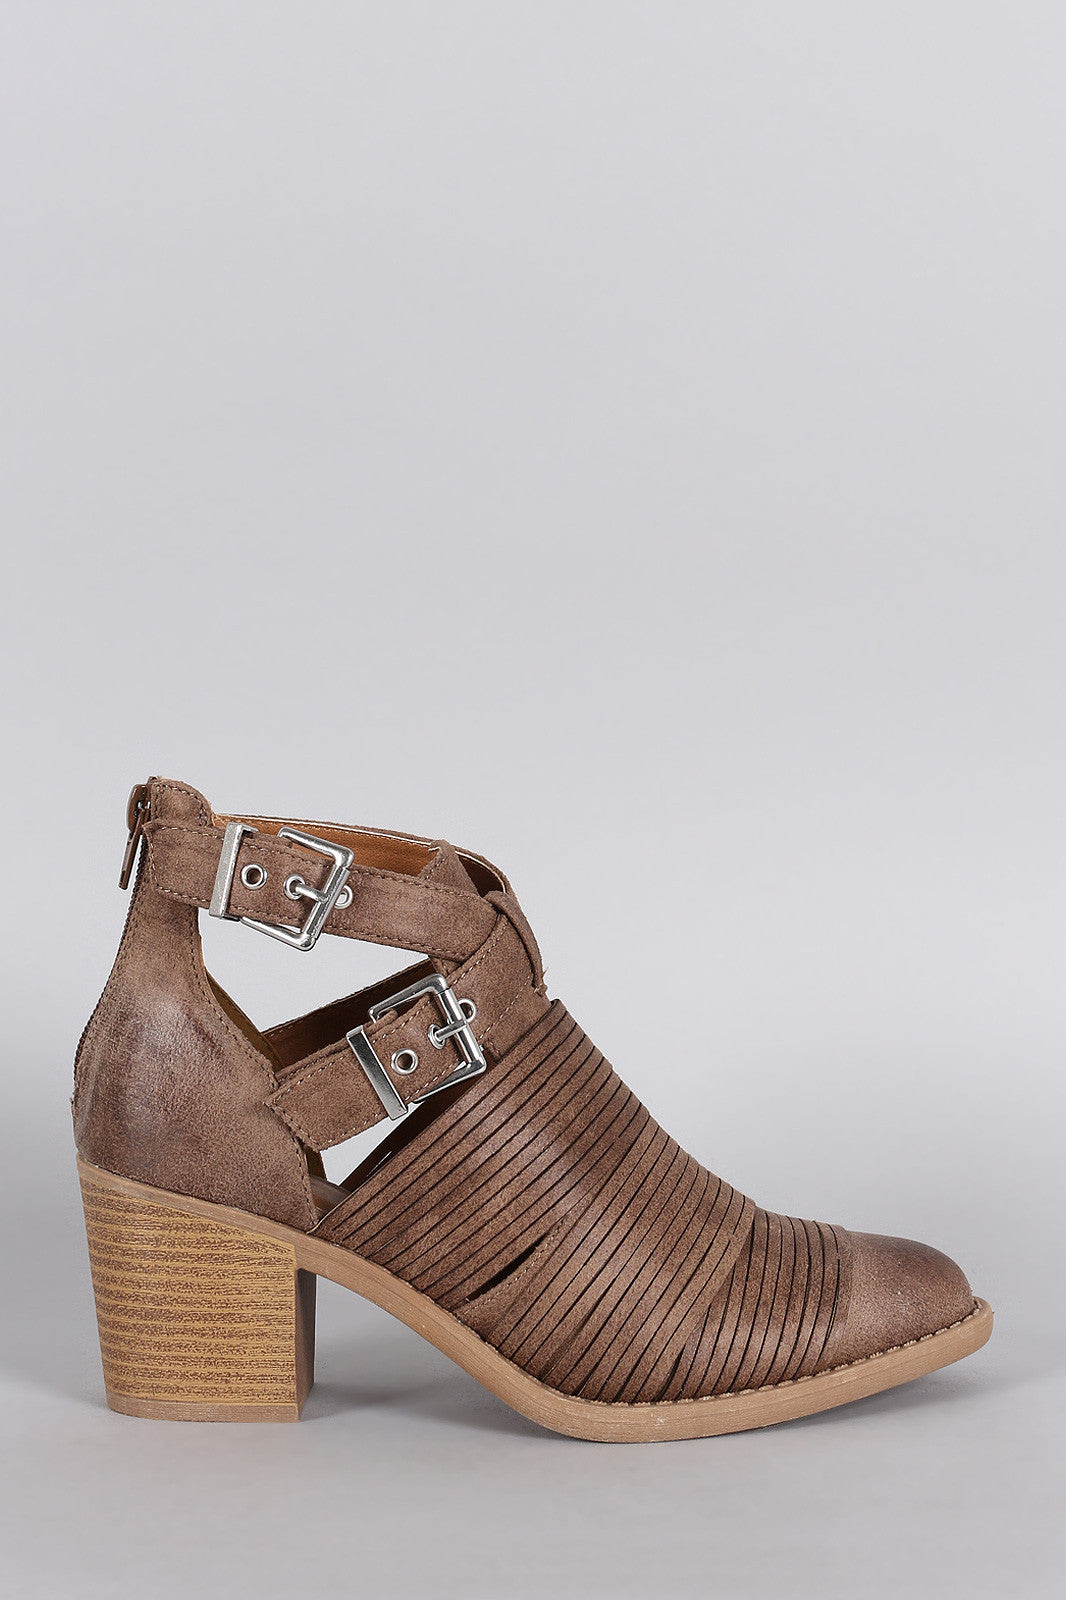 Qupid Slashed Crisscross Buckled Strap Chunky Heeled Ankle Boots - Thick 'N' Curvy Shop - 7